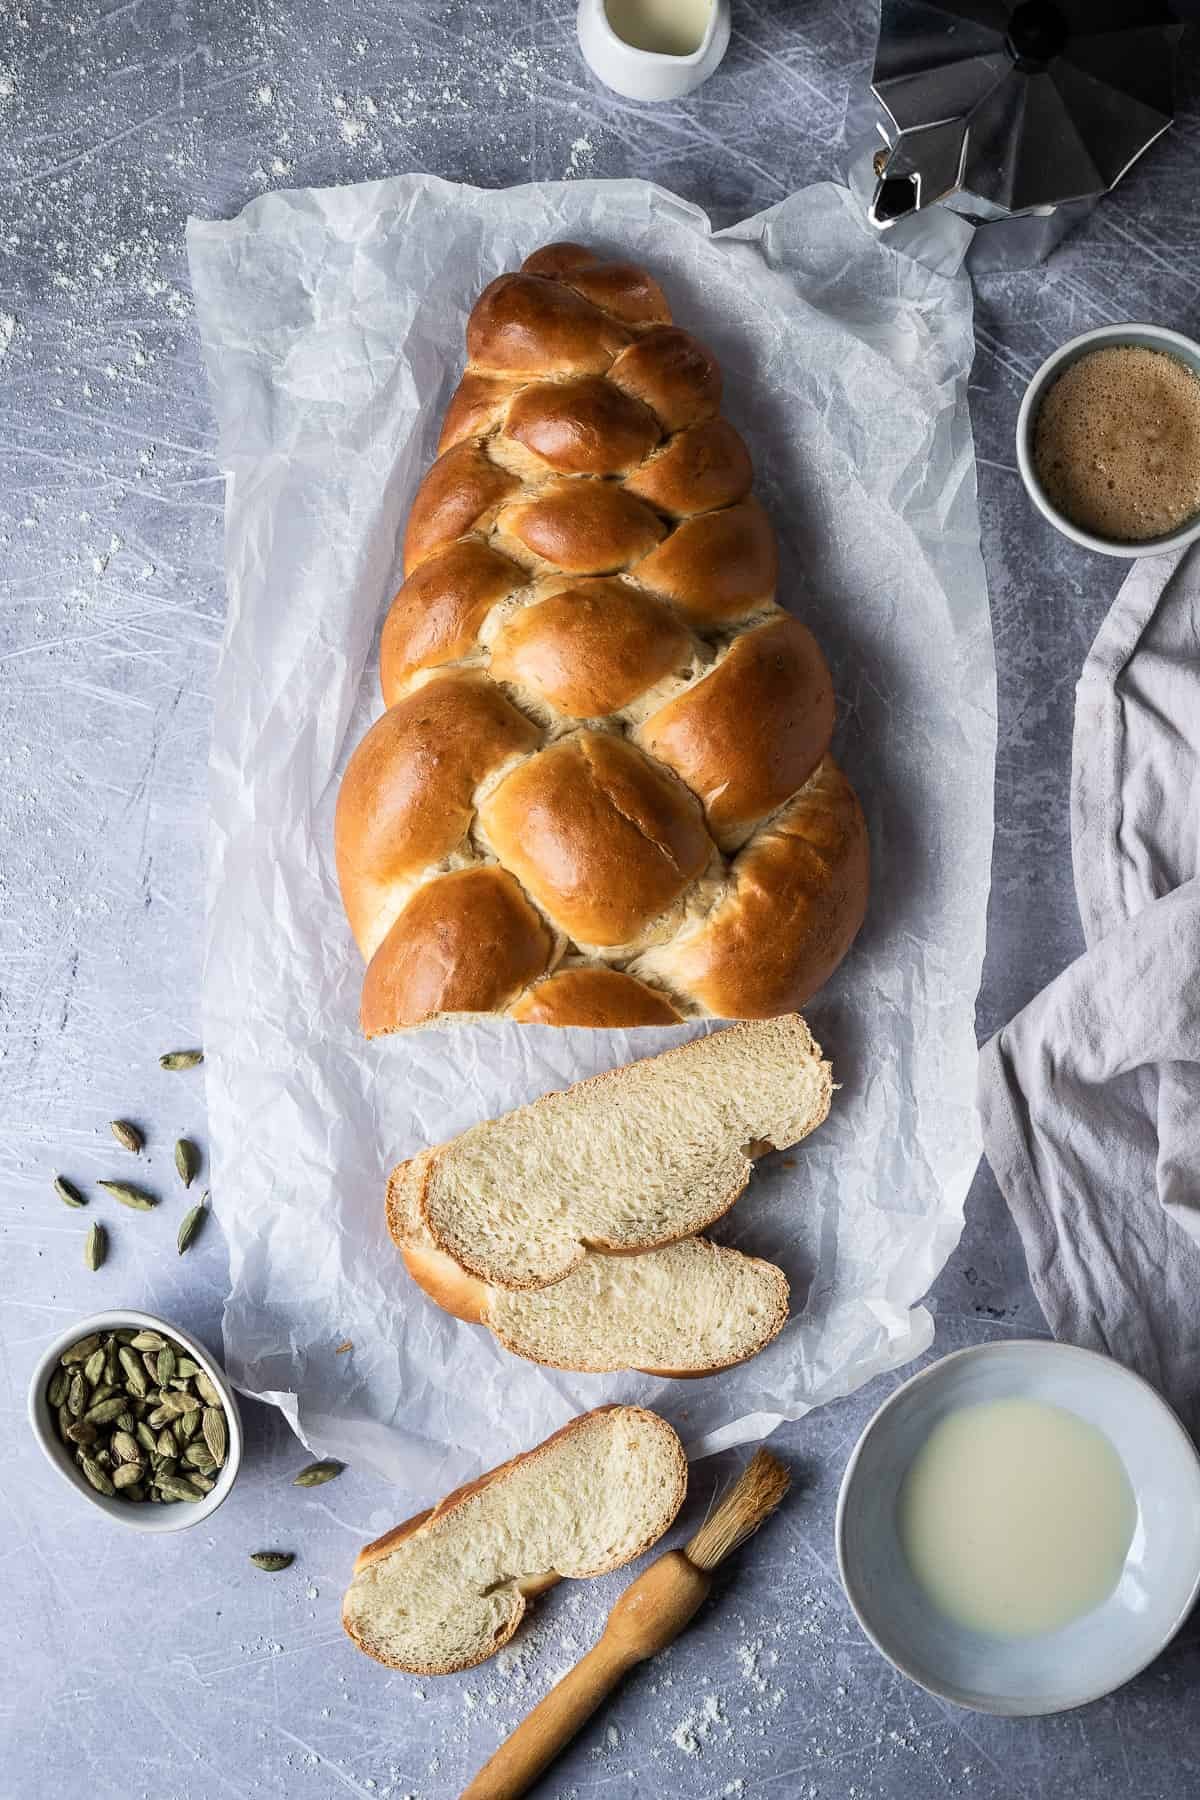 Vegan pulla bread with three pieces sliced off on a sheet of baking parchment on a metal surface with a bowl of cardamom pods, bowl of milk and pastry brush, cup of coffee and a caffetiere.